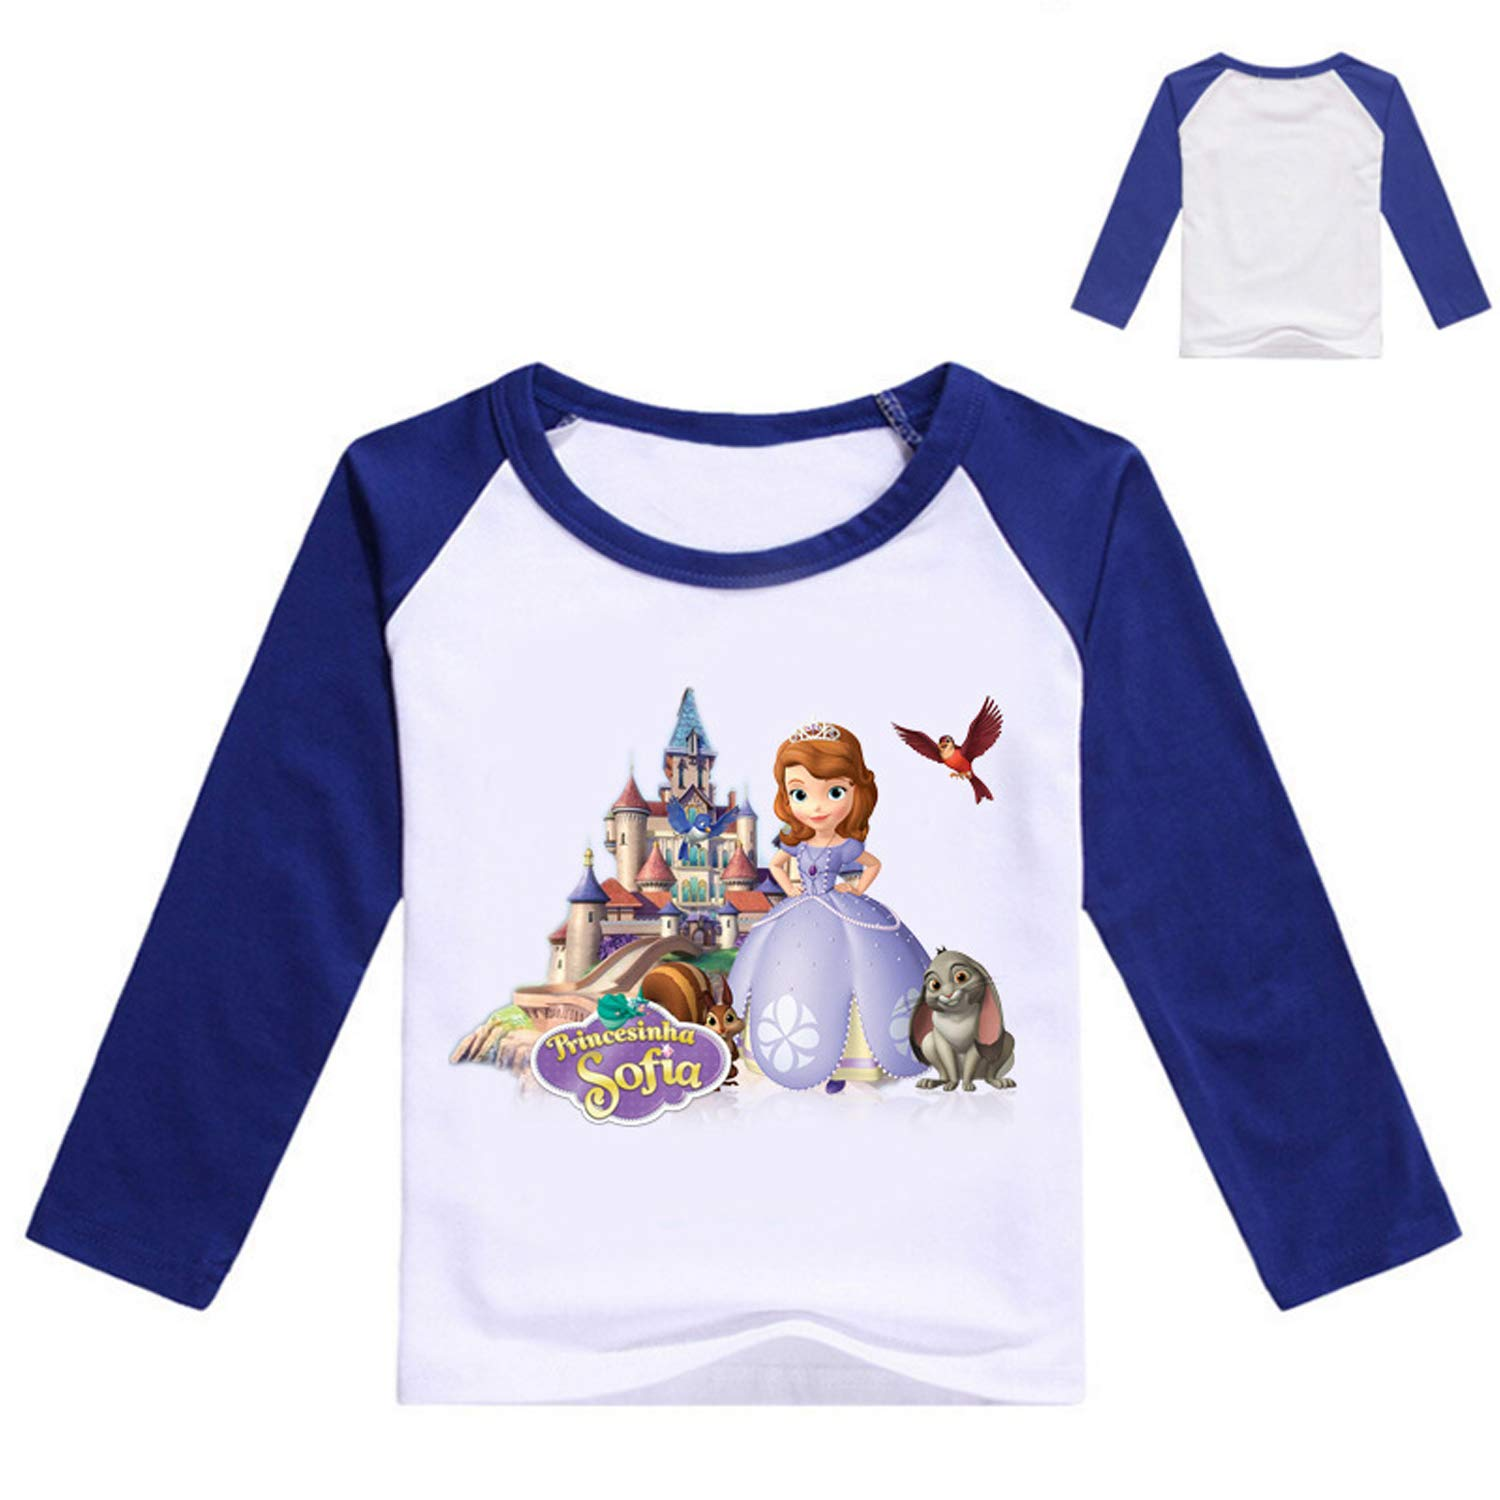 PCLOUD Toddler Girls Sofia Purified Cotton Long Sleeves T-Shirt